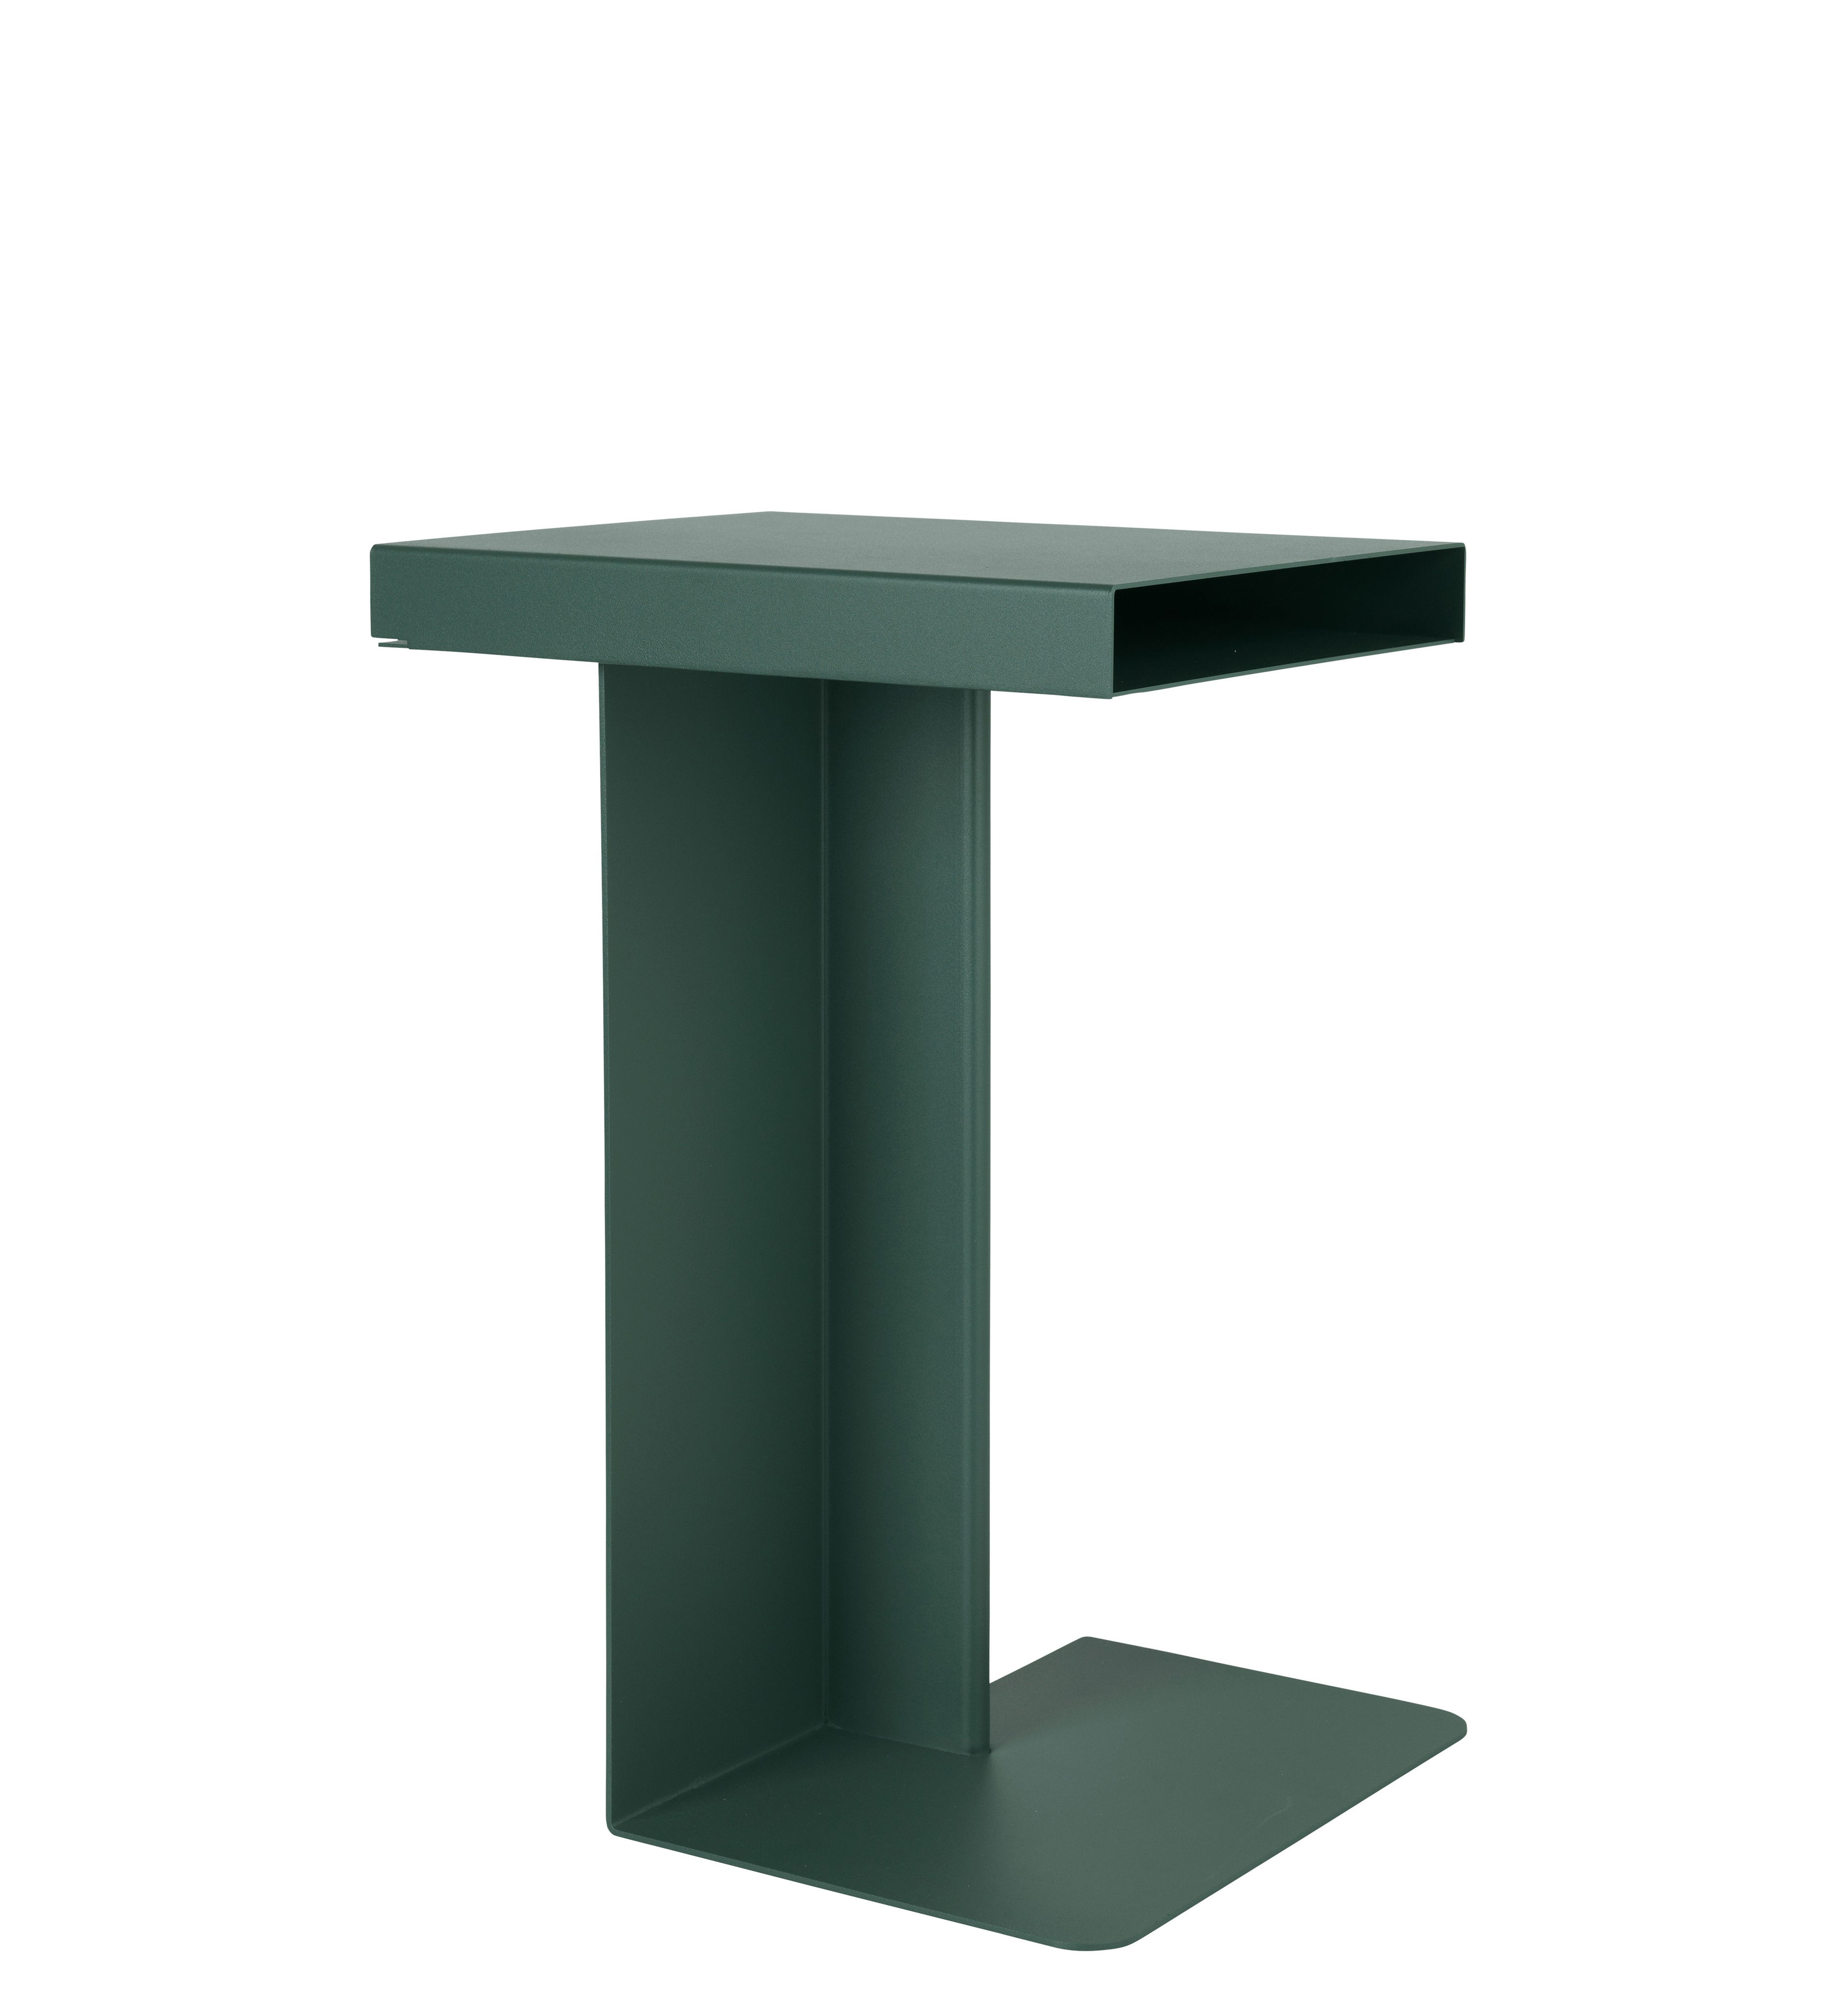 Furniture - Coffee Tables - Radar End table - / H 55 cm - Metal by Nomess - Fir tree green - Epoxy lacquered metal